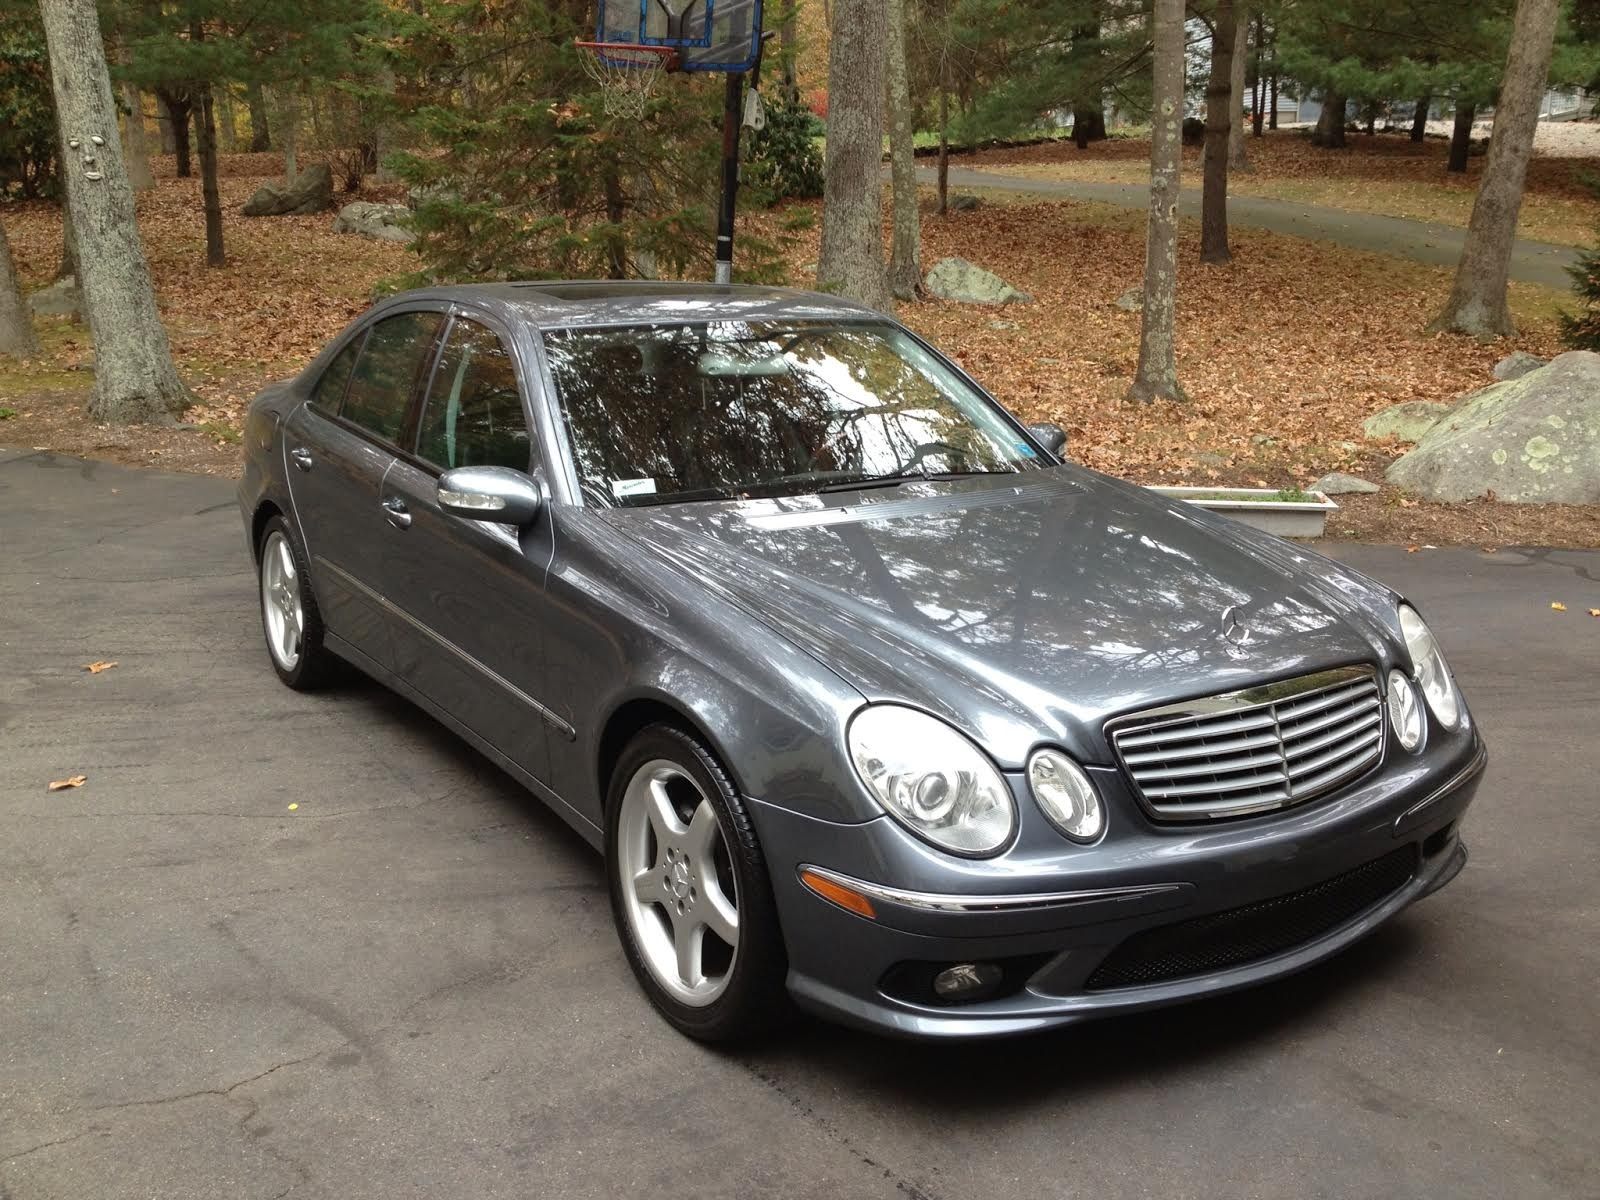 2005 mercedes benz e class pictures cargurus for 2005 mercedes benz suv